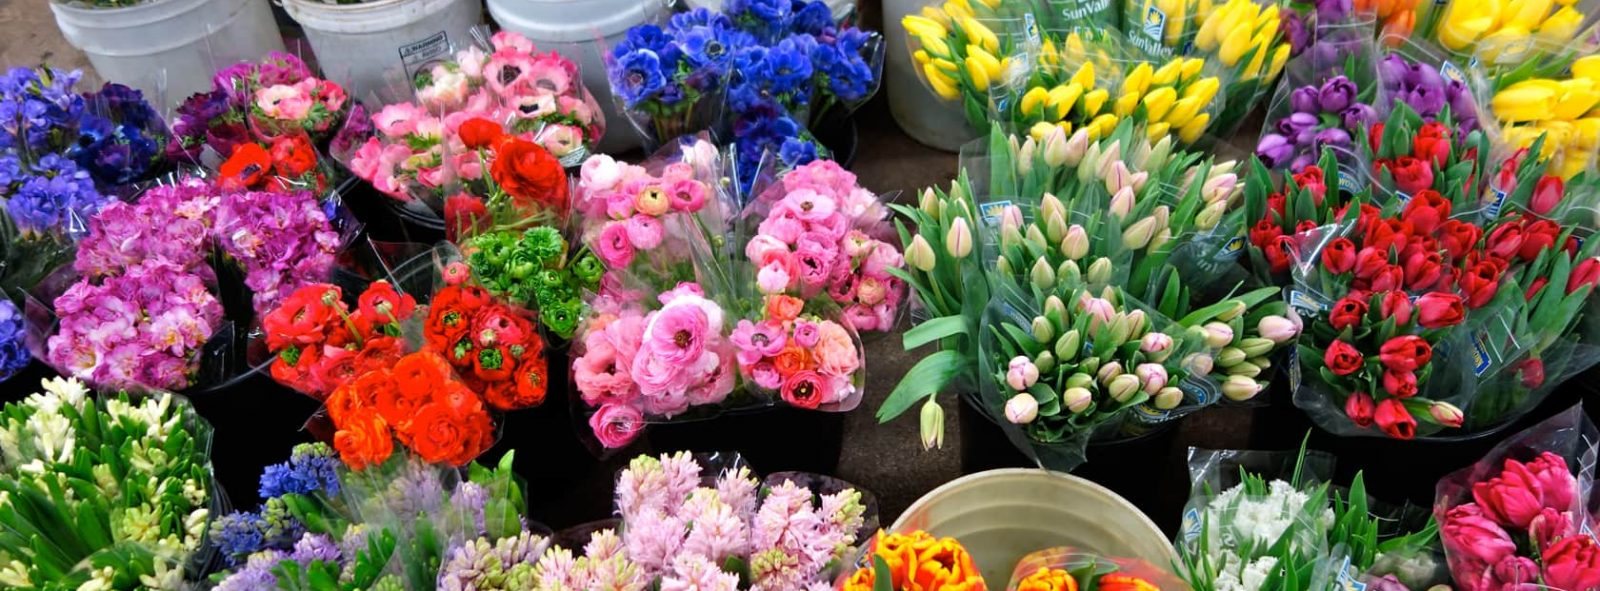 Ladybug Florist – Your Florist in Toronto for Flowers and Gifts for